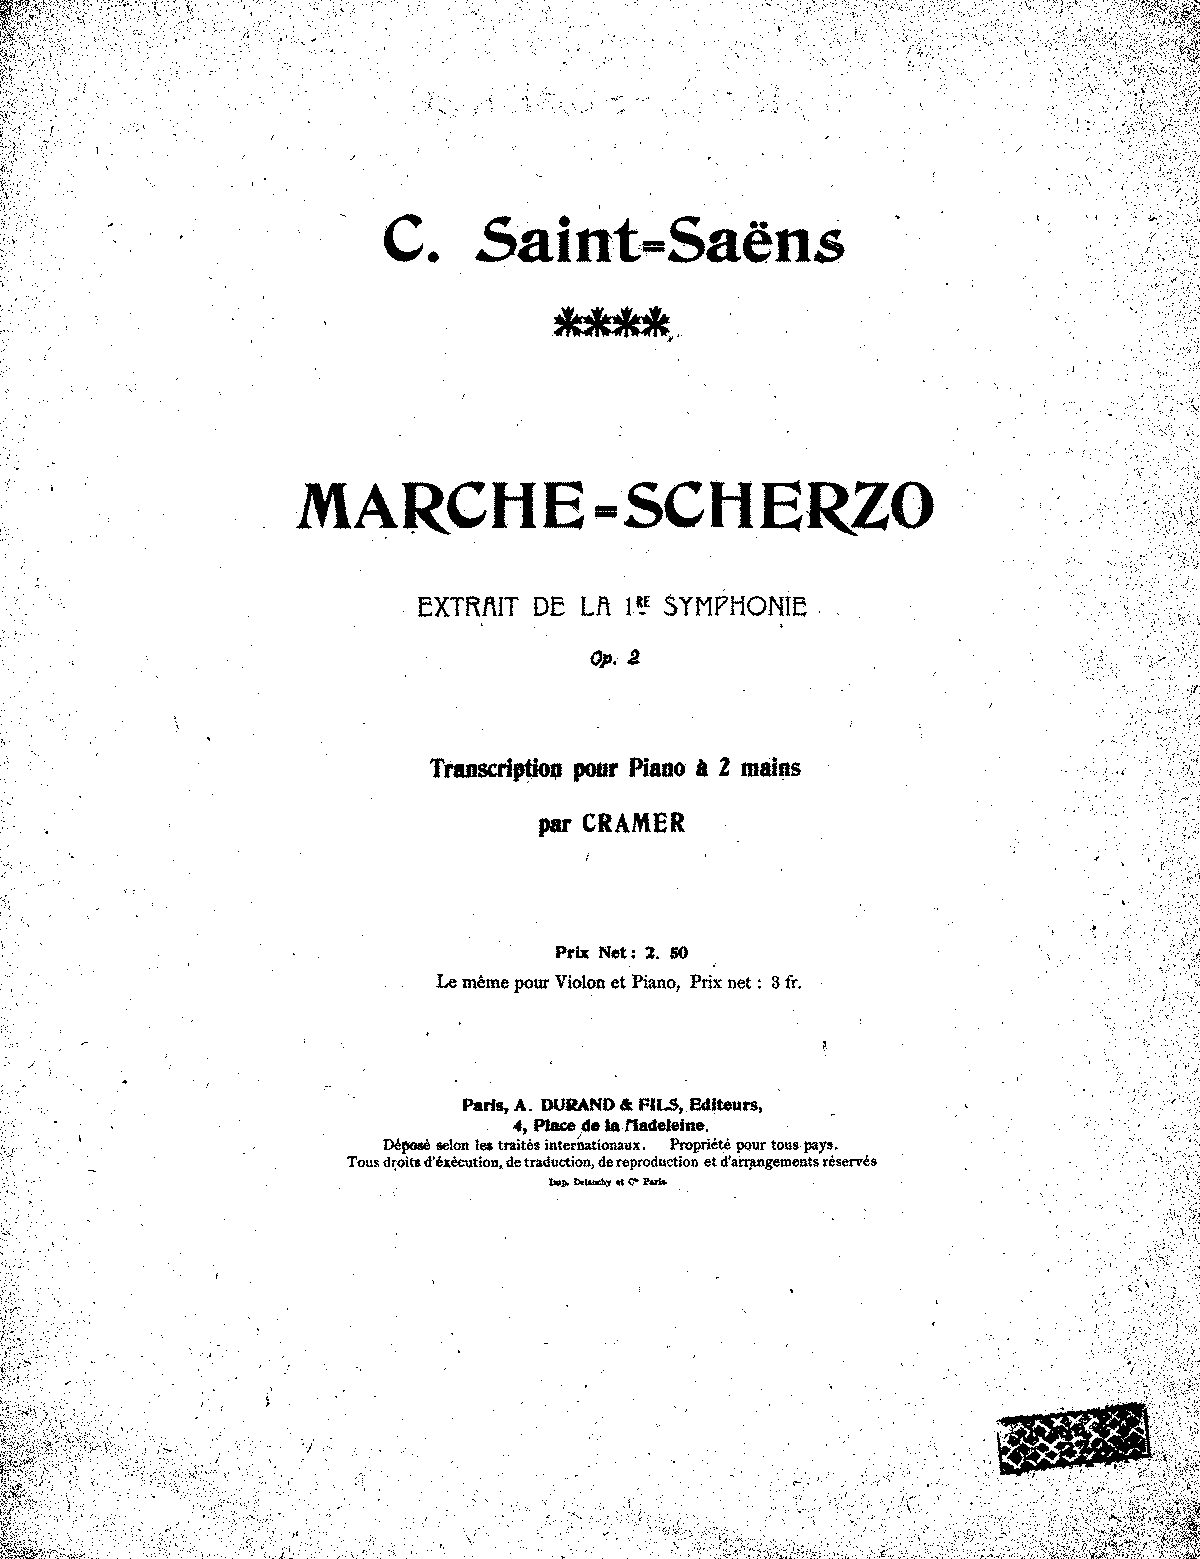 PMLP49221-Saint-Saëns March-Scherzo from Symphony No1 Op2 (2H Cramer).pdf